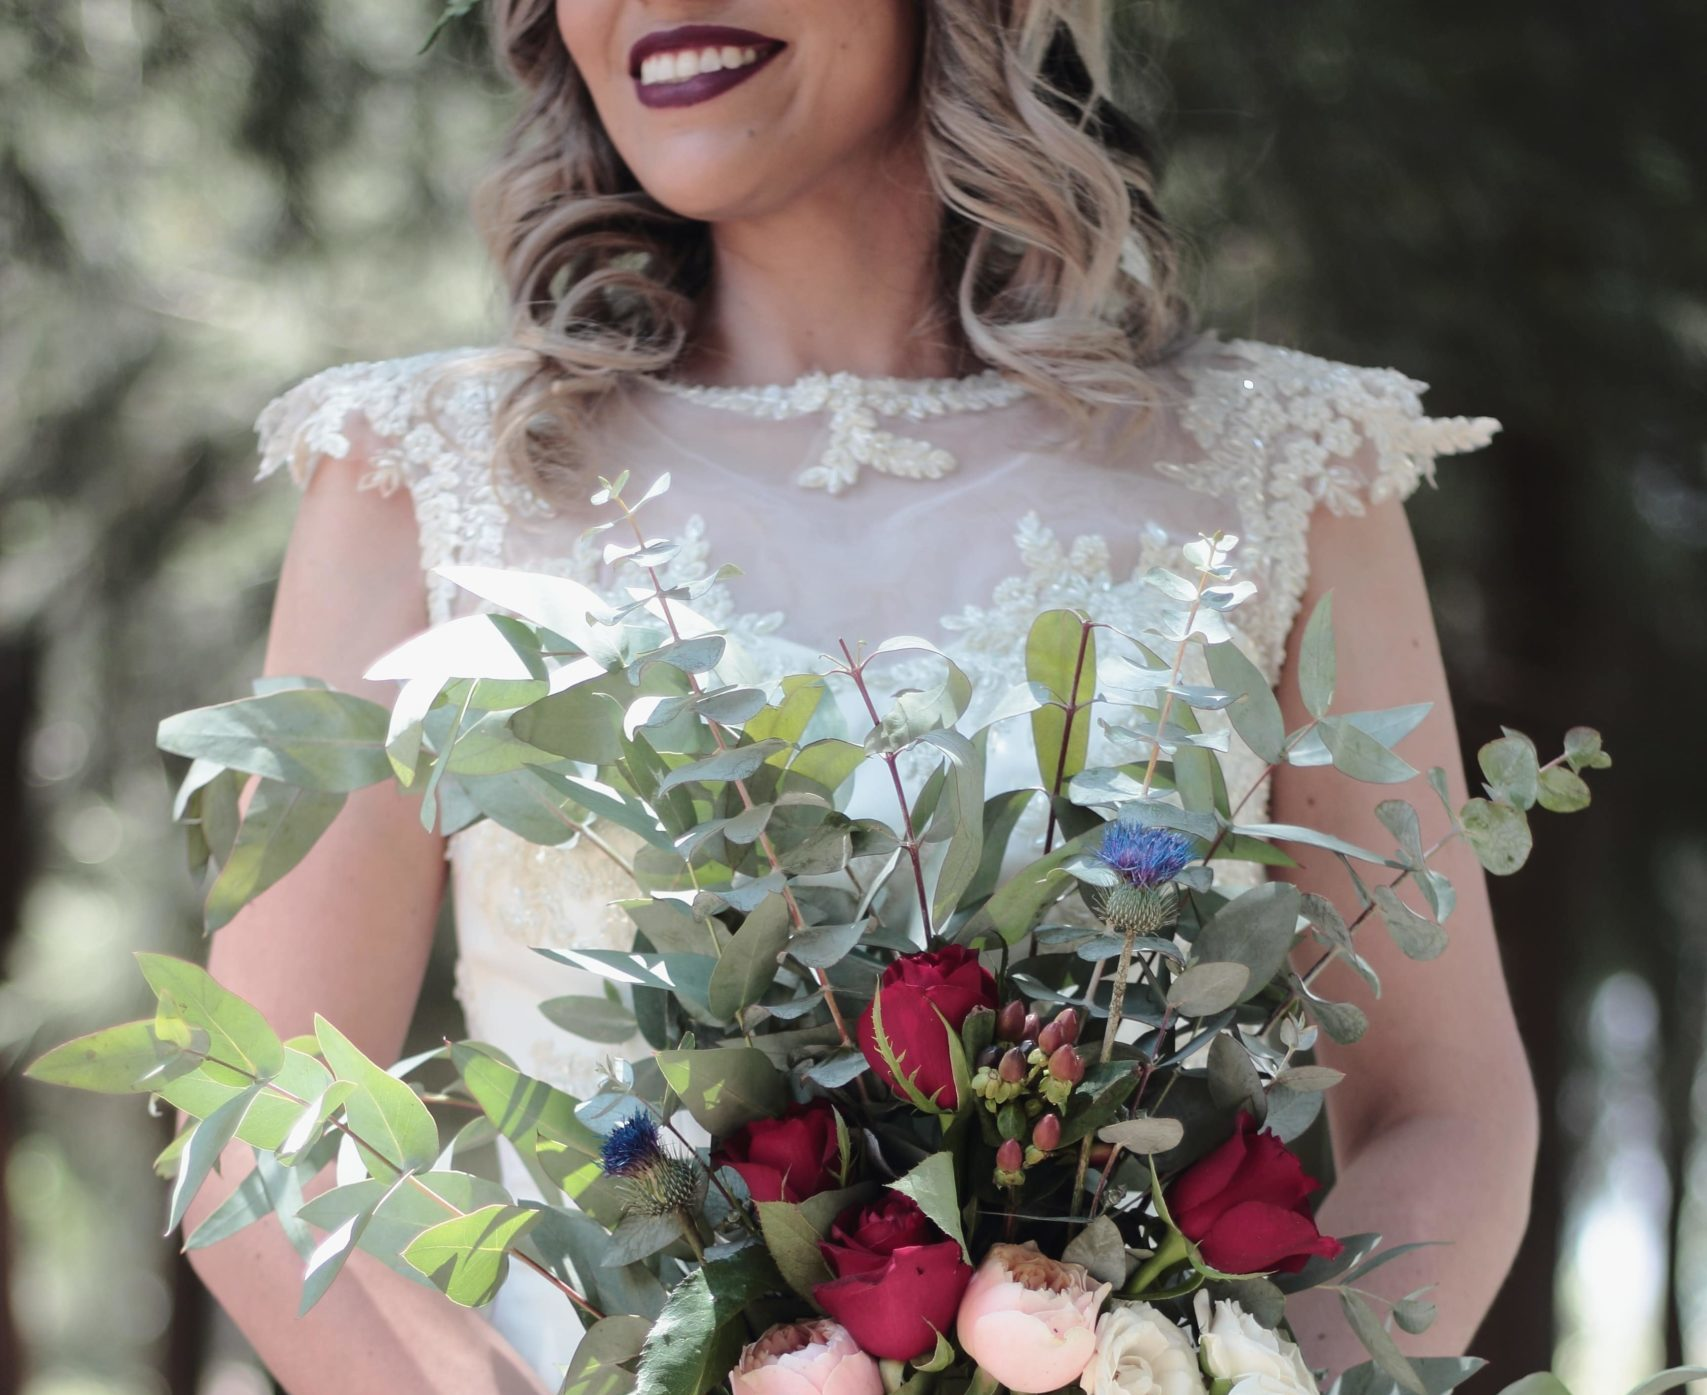 woman in wedding dress, holding flowers and wearing dark lipstick.